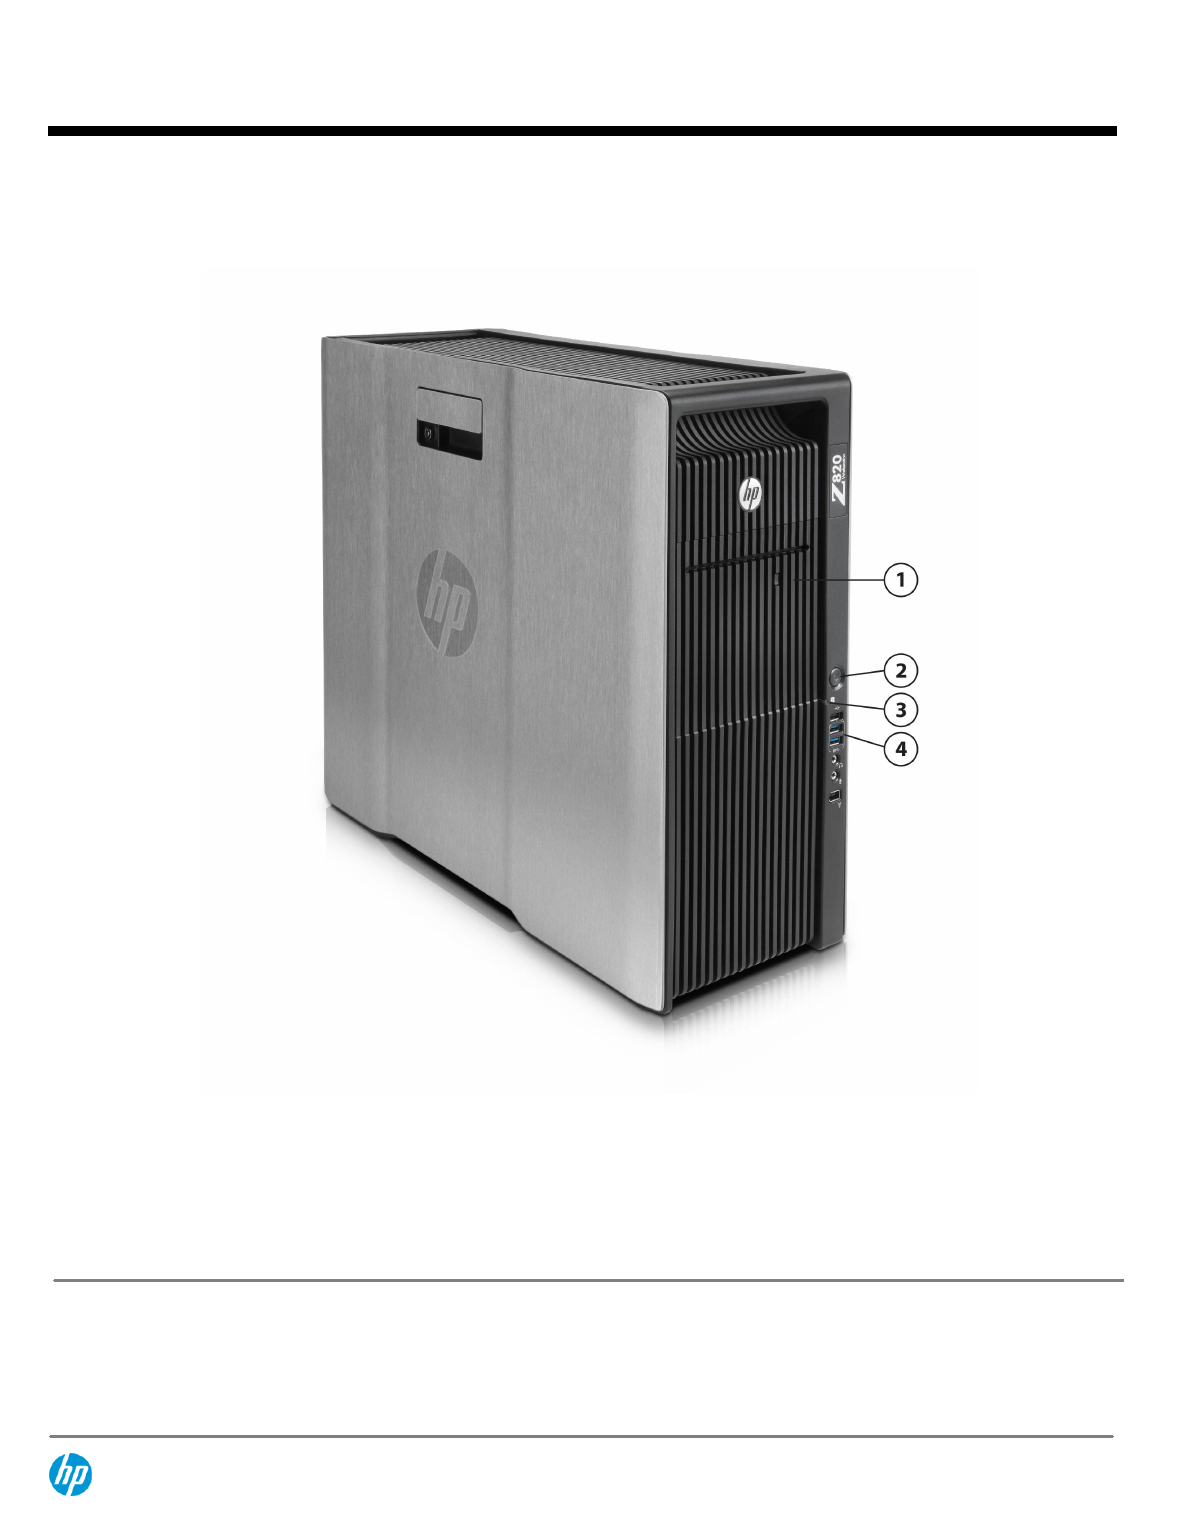 hp z820 workstation network drivers